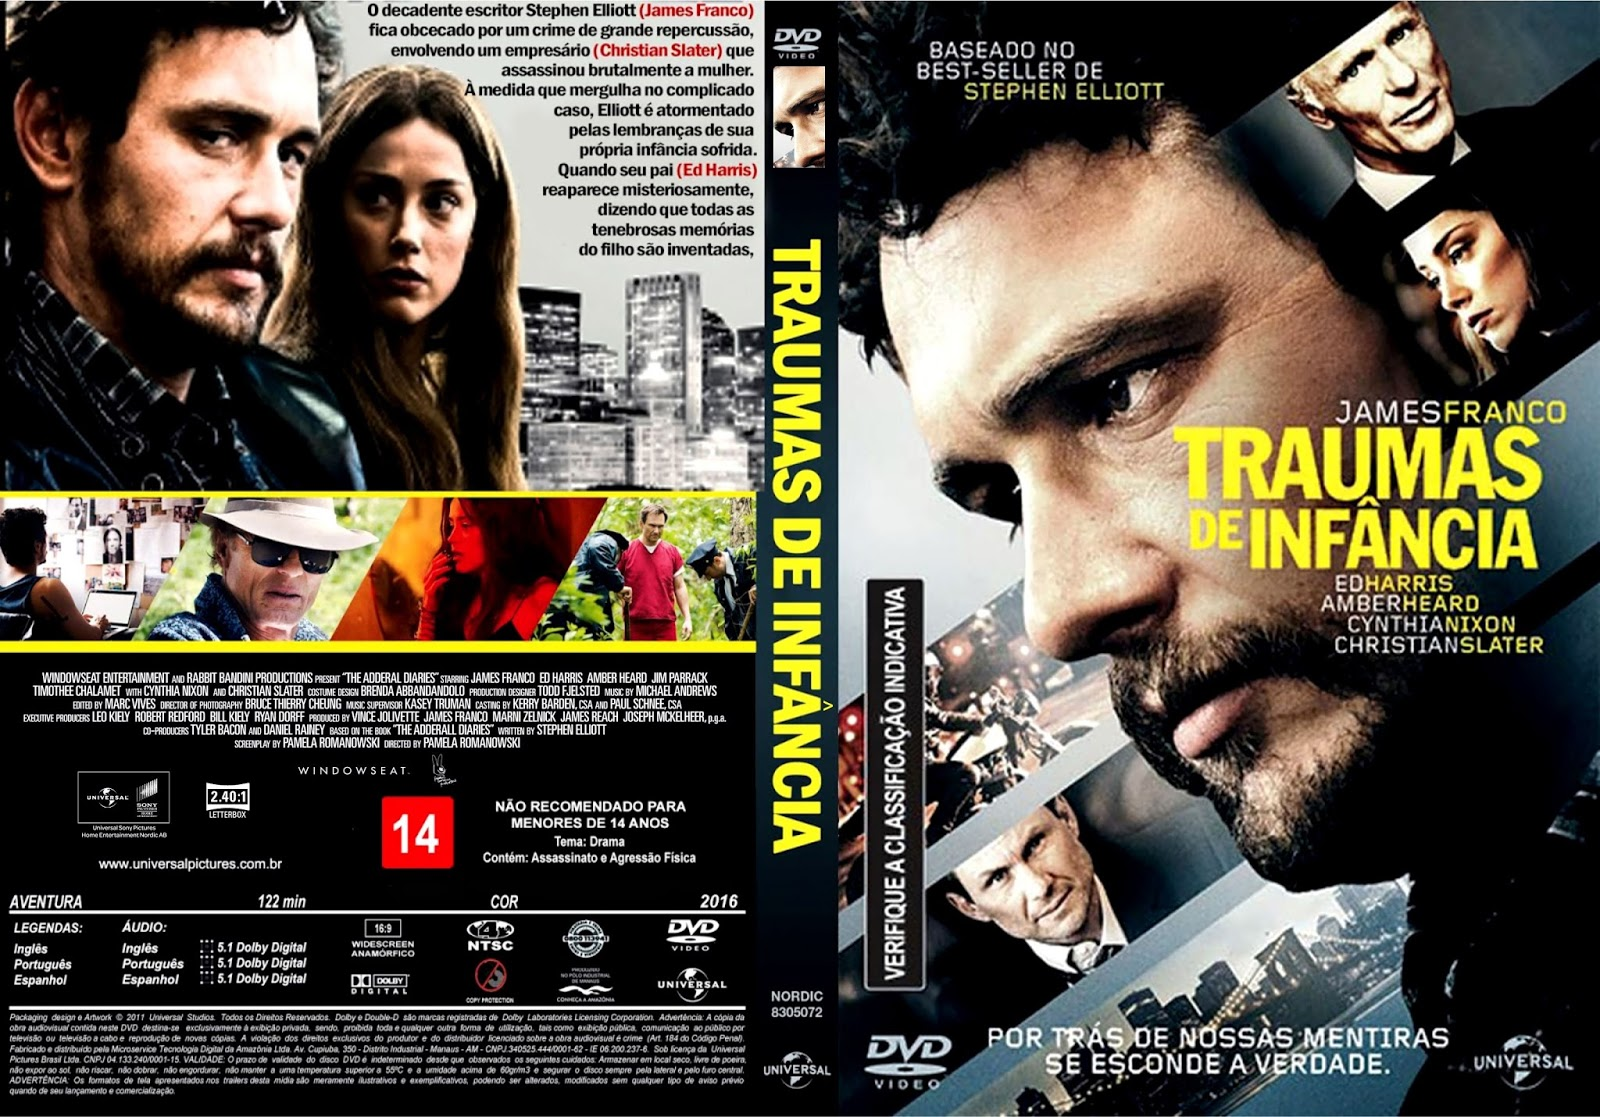 Download Traumas de Infância DVDRip XviD Dublado Traumas 2Bde 2BInf 25C3 25A2ncia 2B  2BXANDAODOWNLOAD